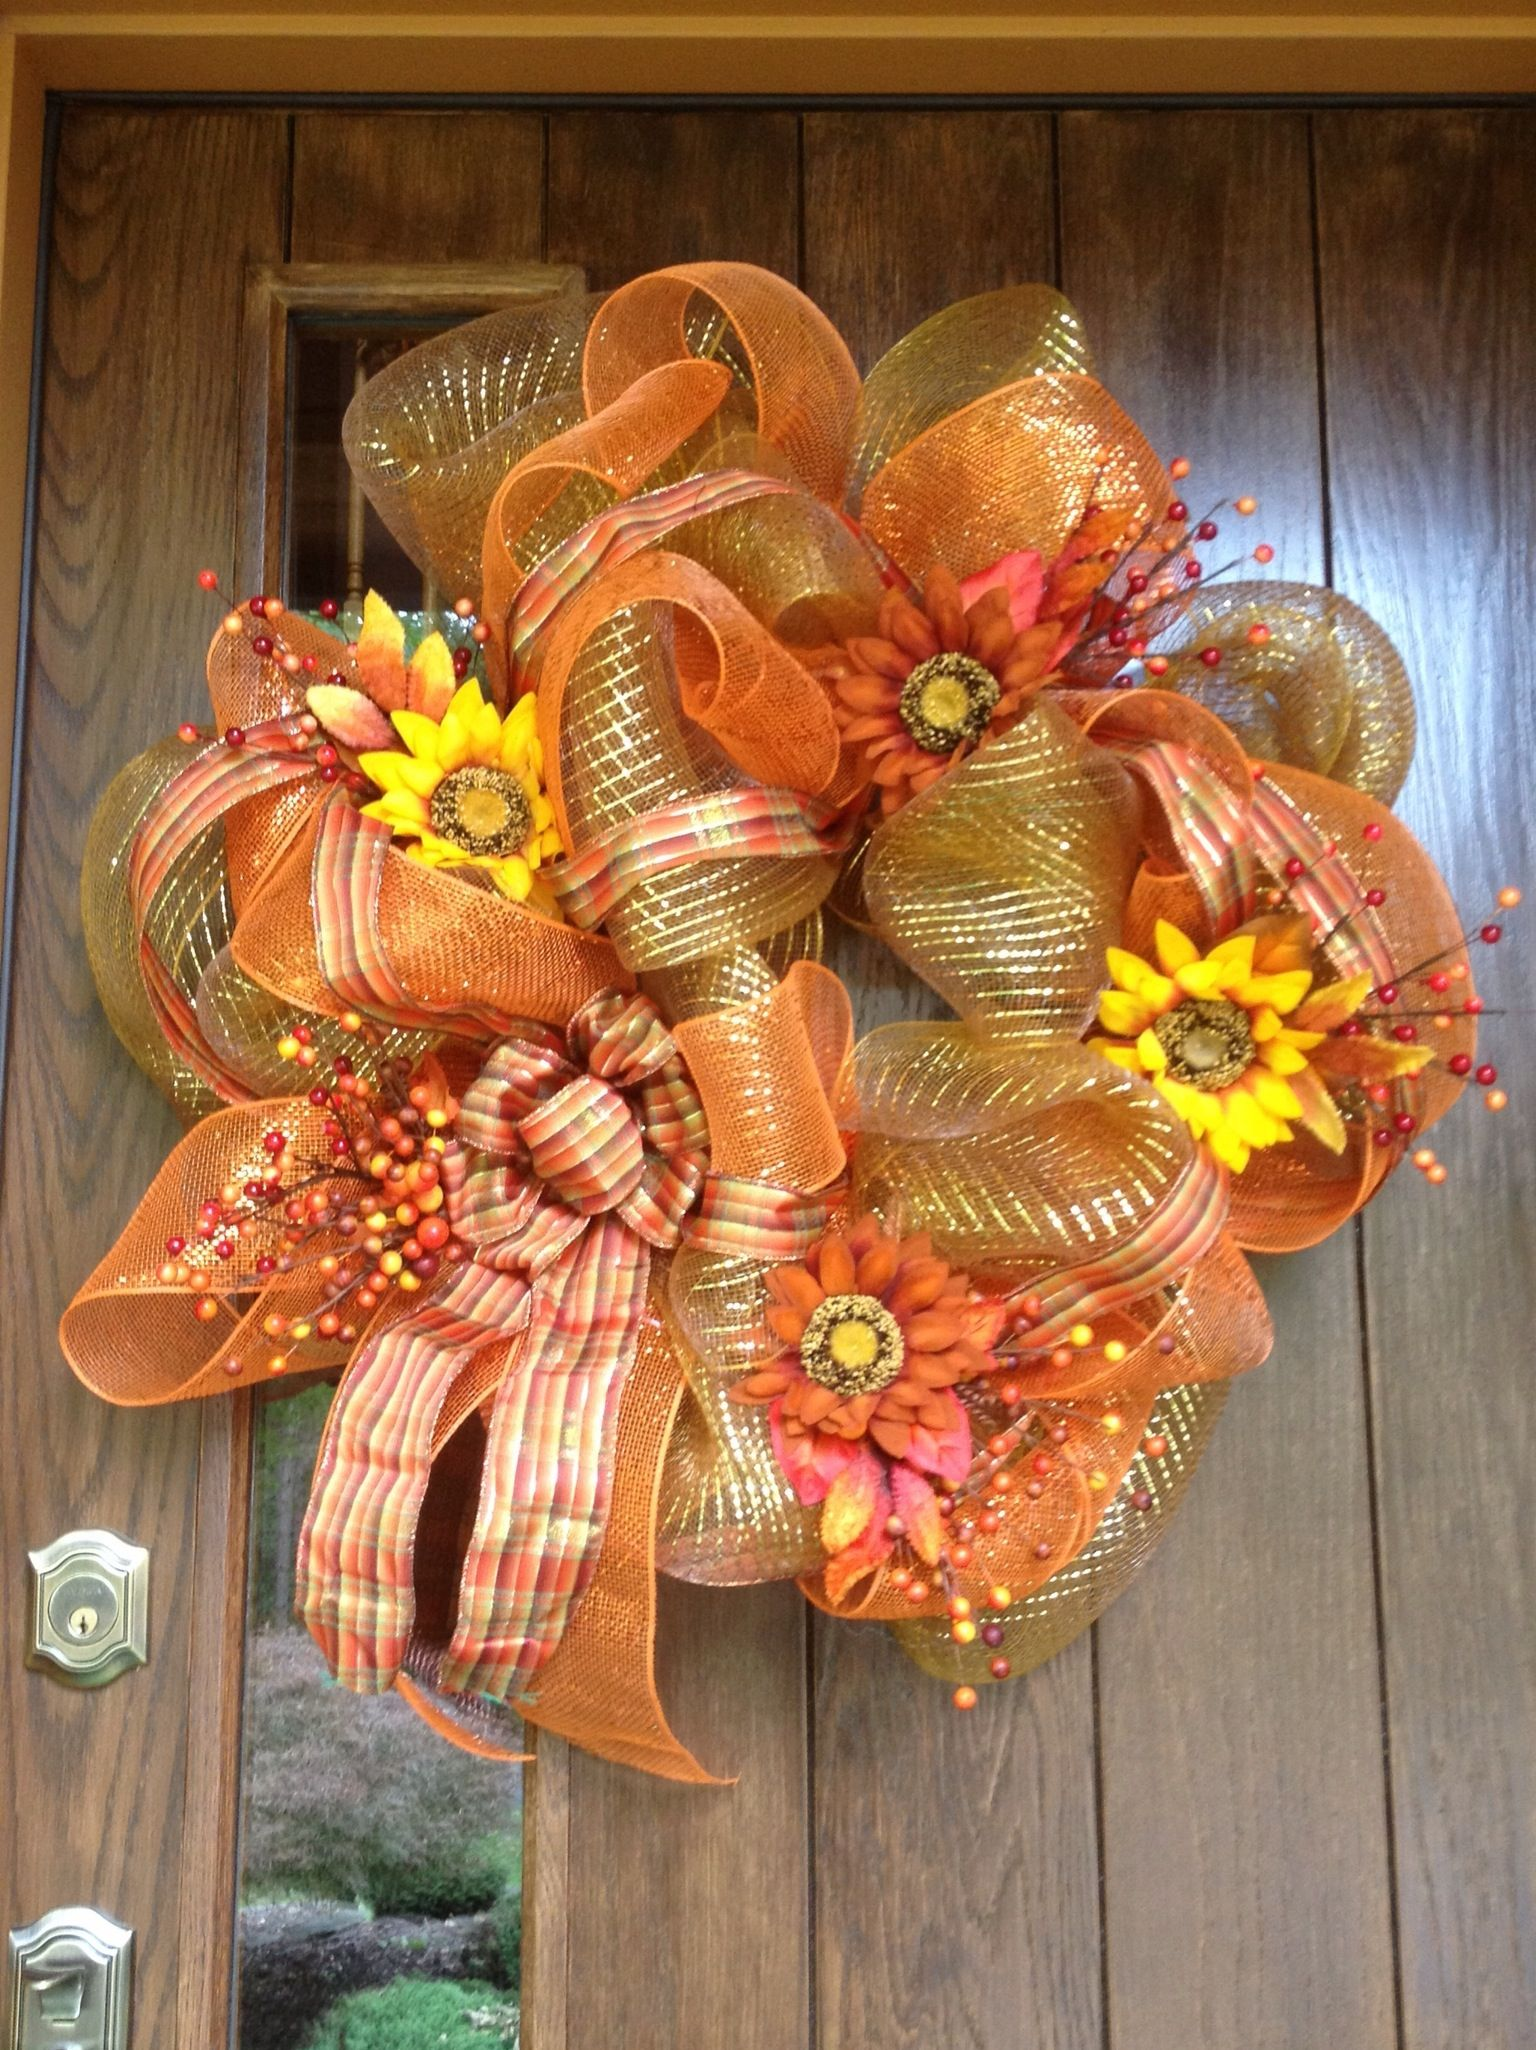 Our front door for fall! Wreath inspired by Pinterest